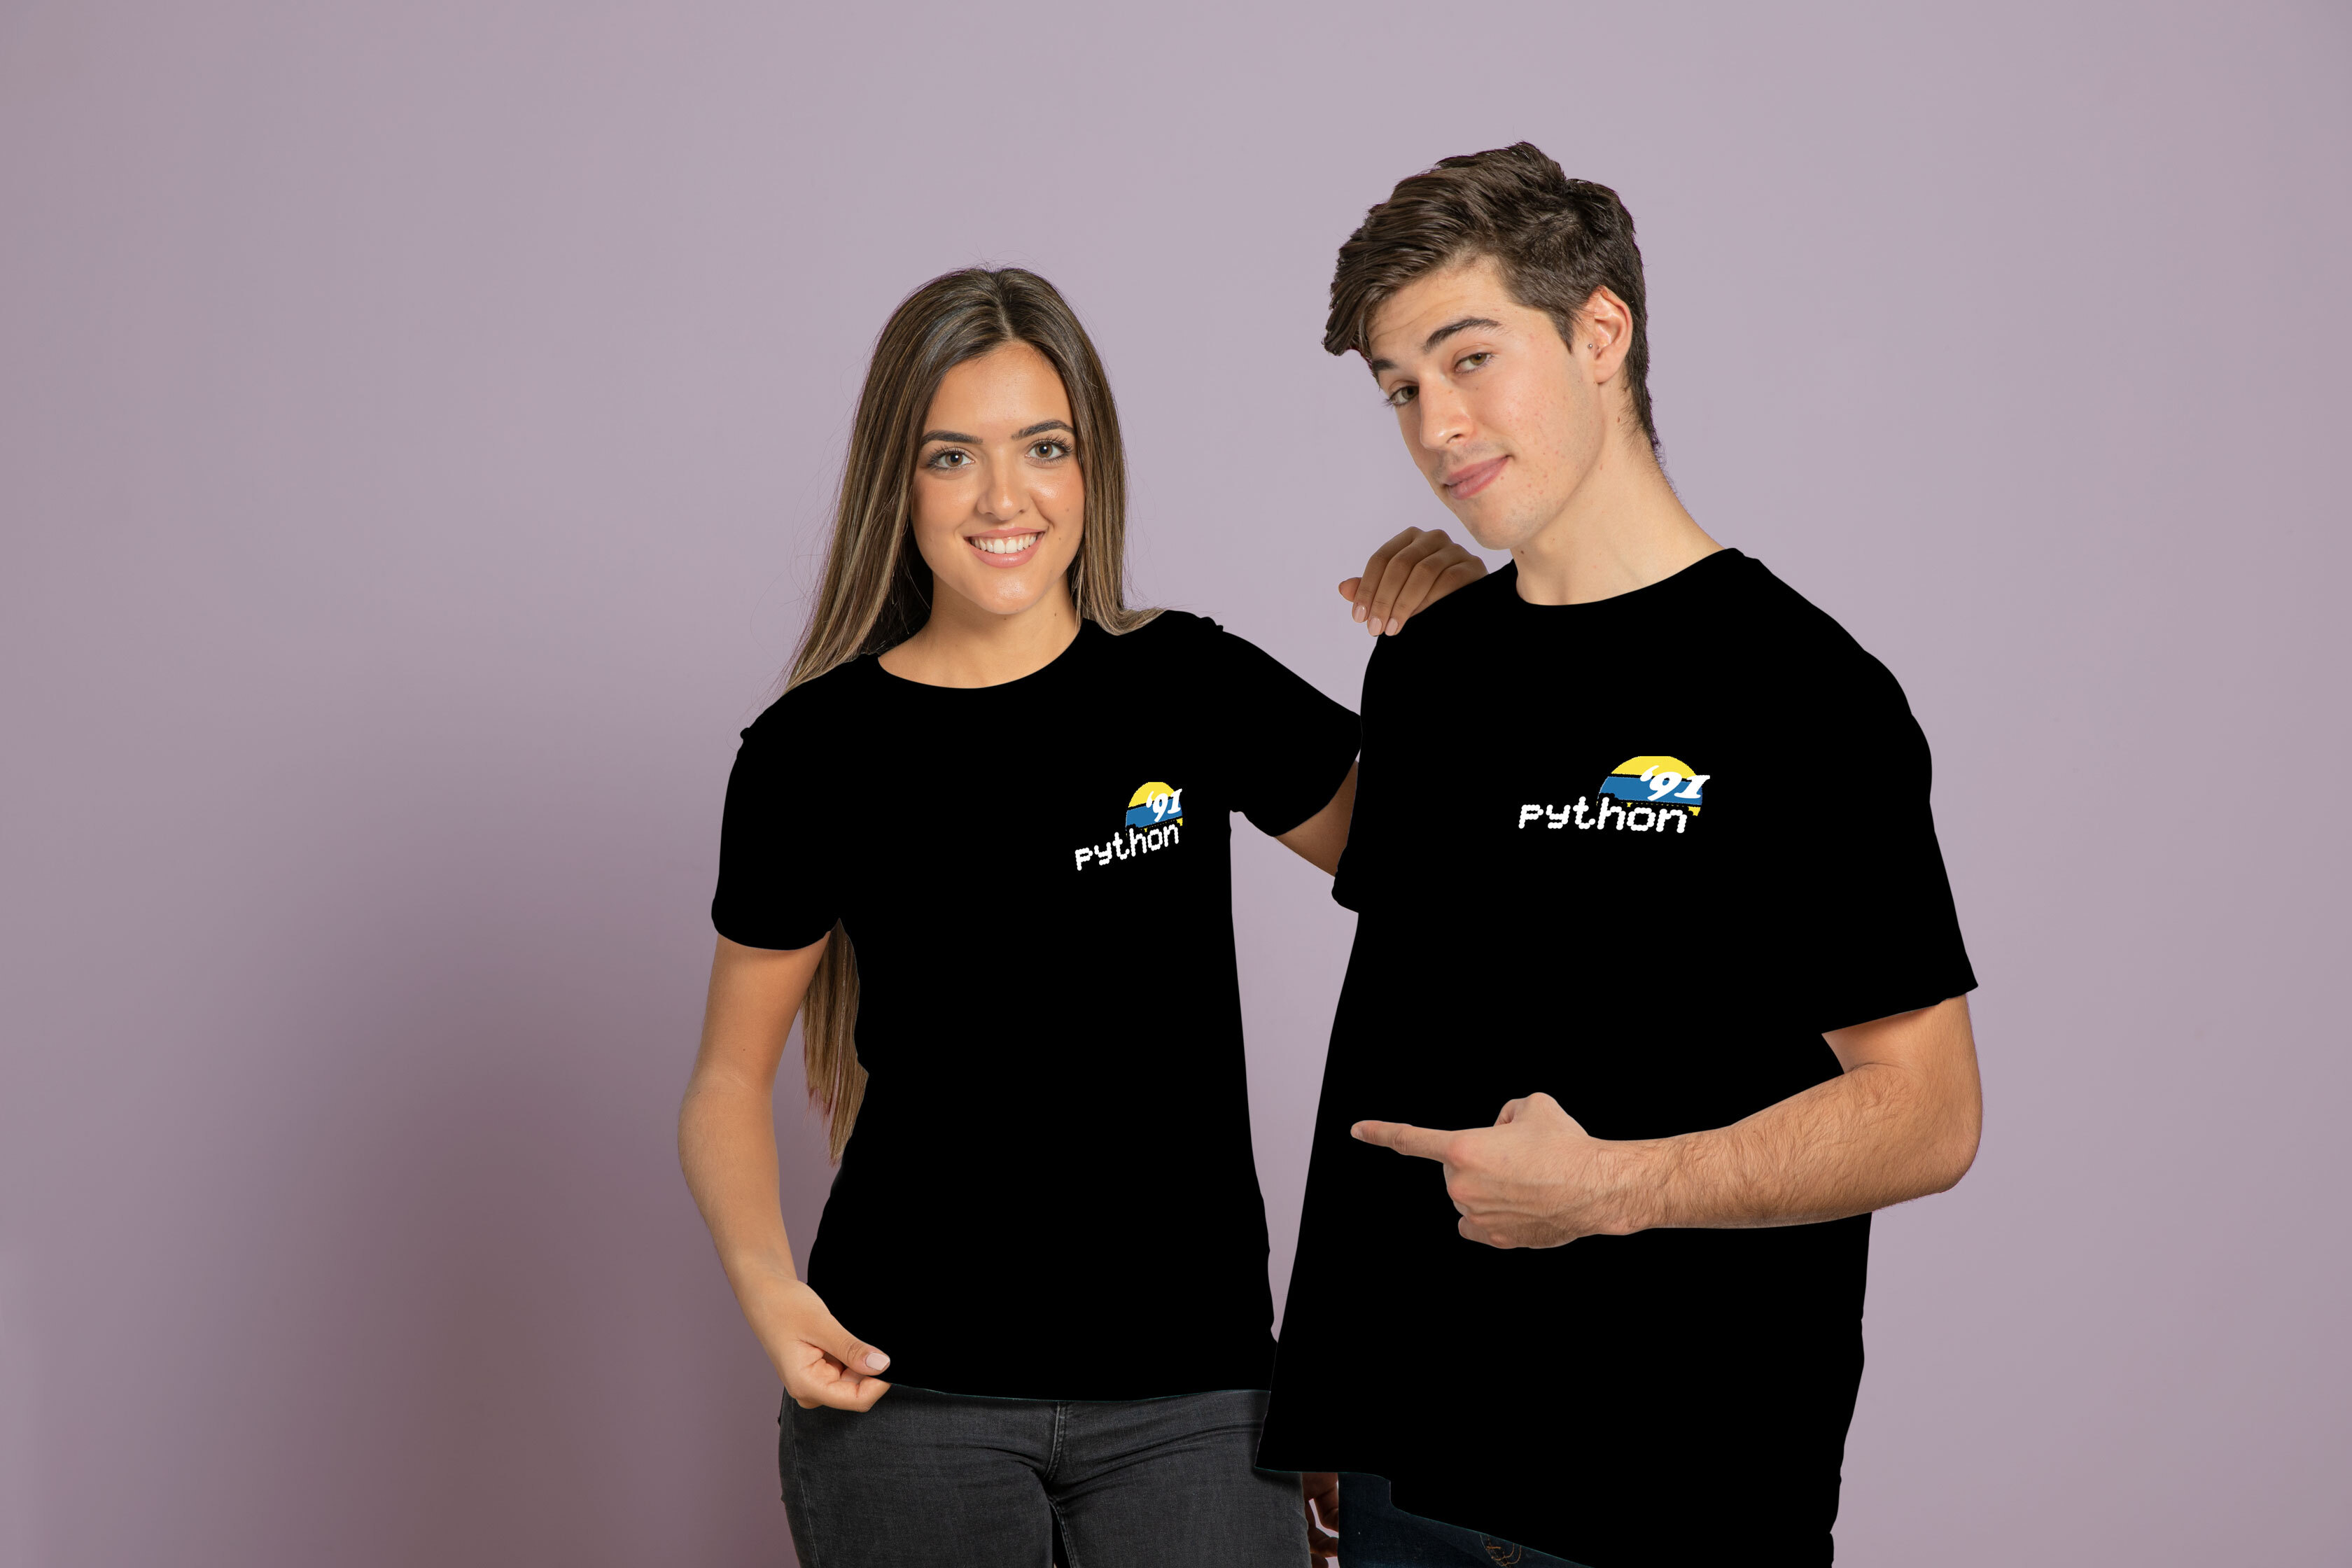 two people wearing a mock up of the sun Python shirt design